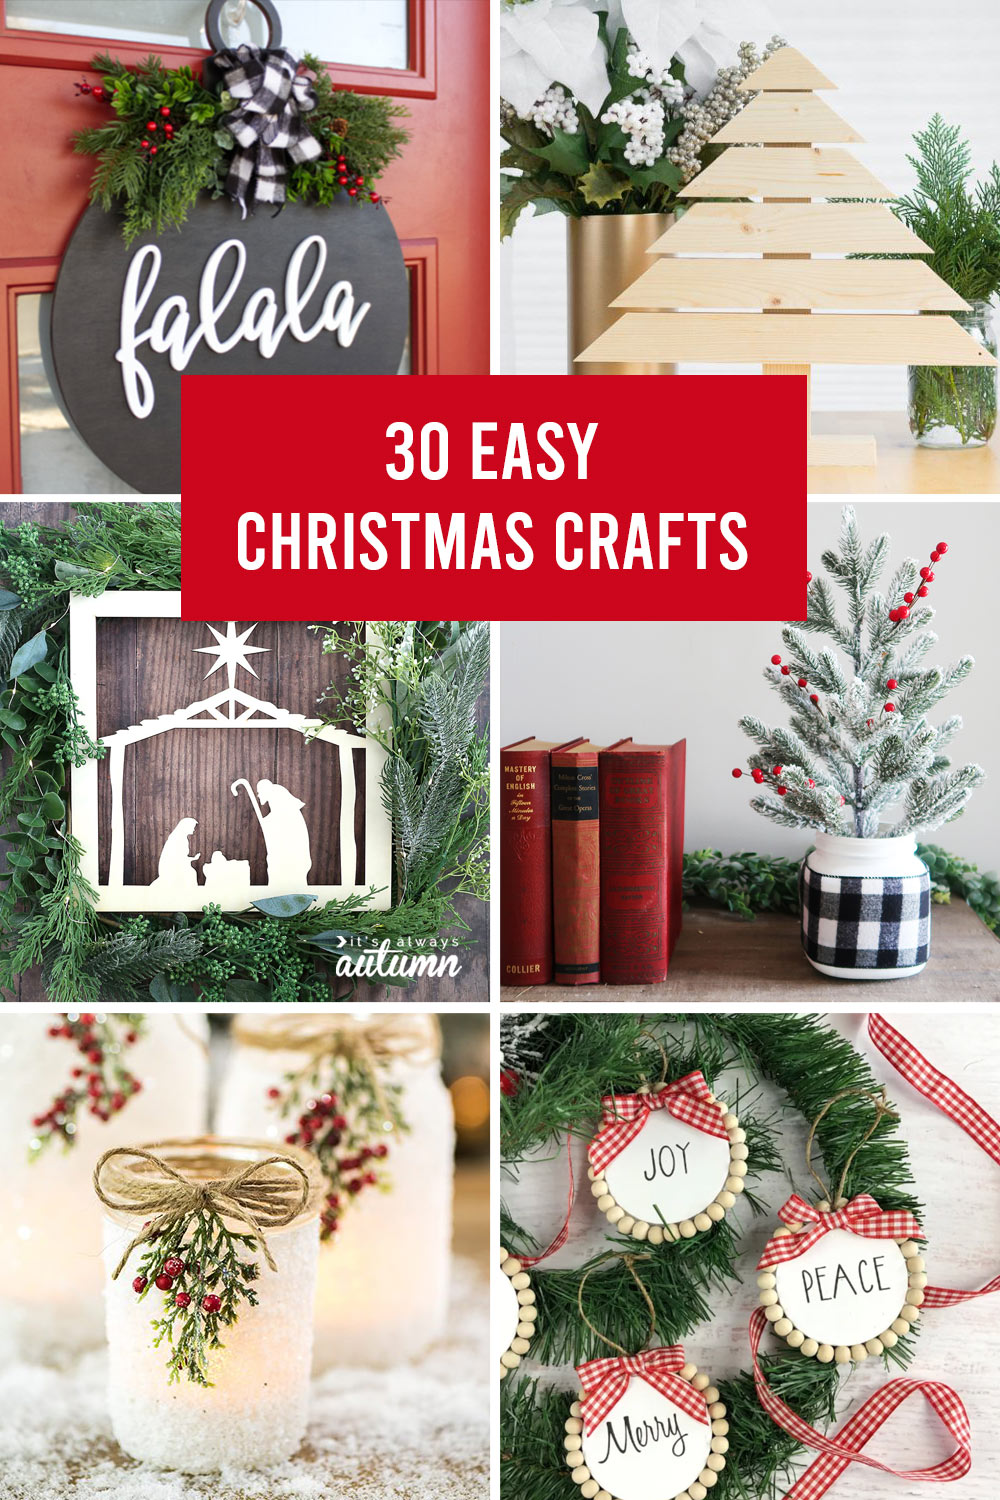 collage of 30 Christmas craft projects for adults